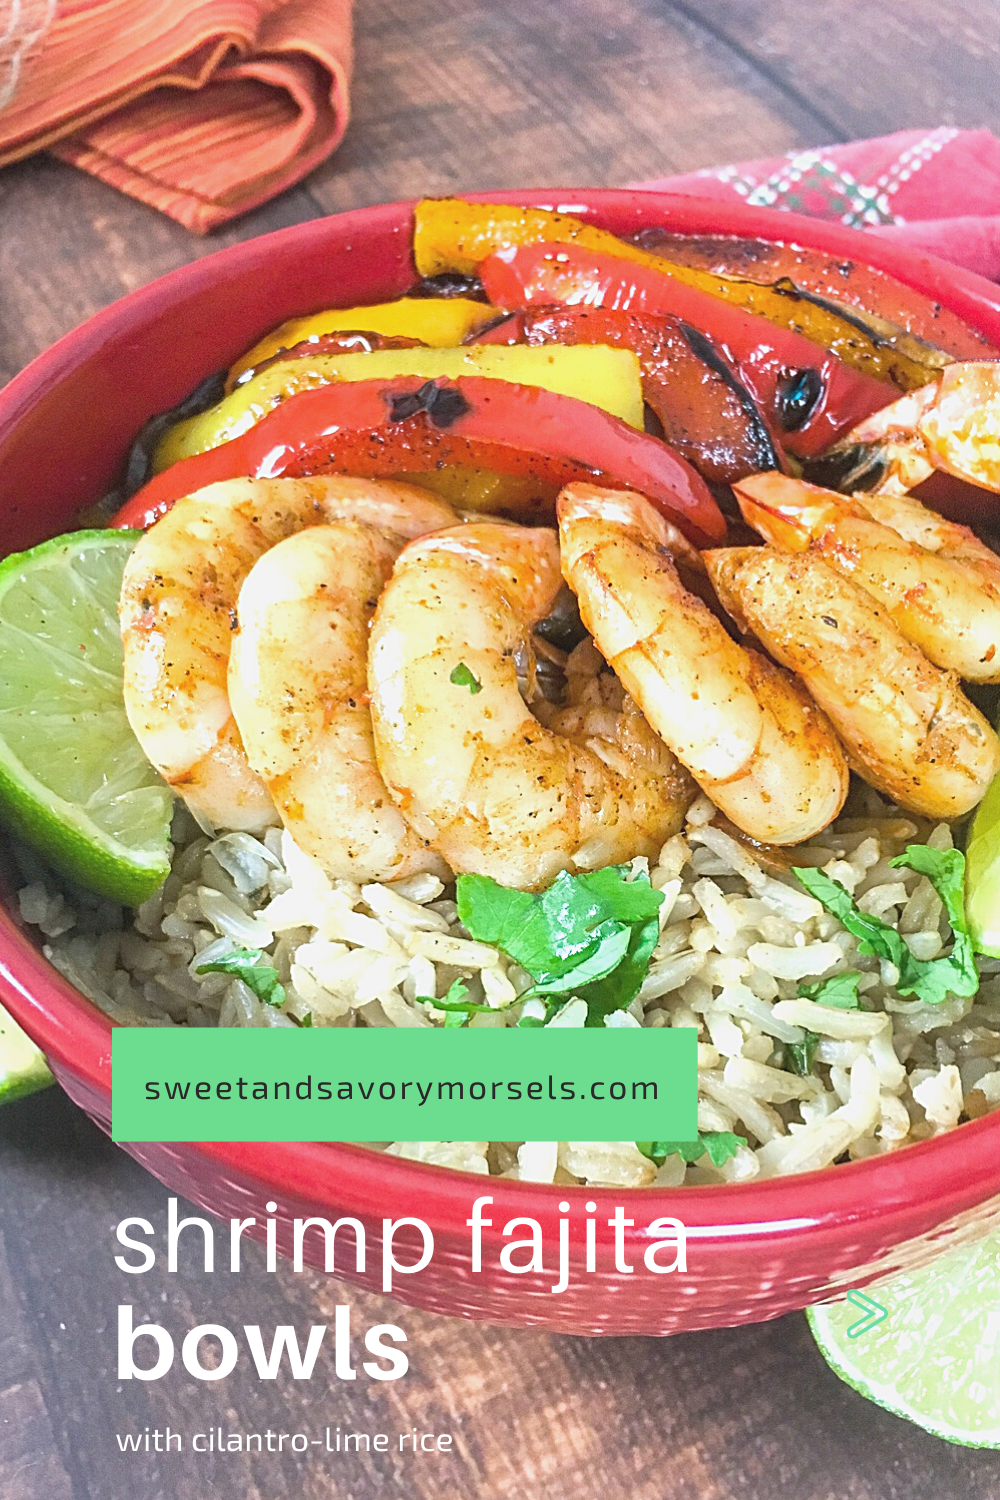 Tender shrimp and fresh vegetables are seasoned with a tasty blend of chili powder, cumin, and garlic then served over a bowl of cilantro-lime rice in this quick and easy Shrimp Fajita Bowls recipe. #sweetandsavorymorsels #recipes